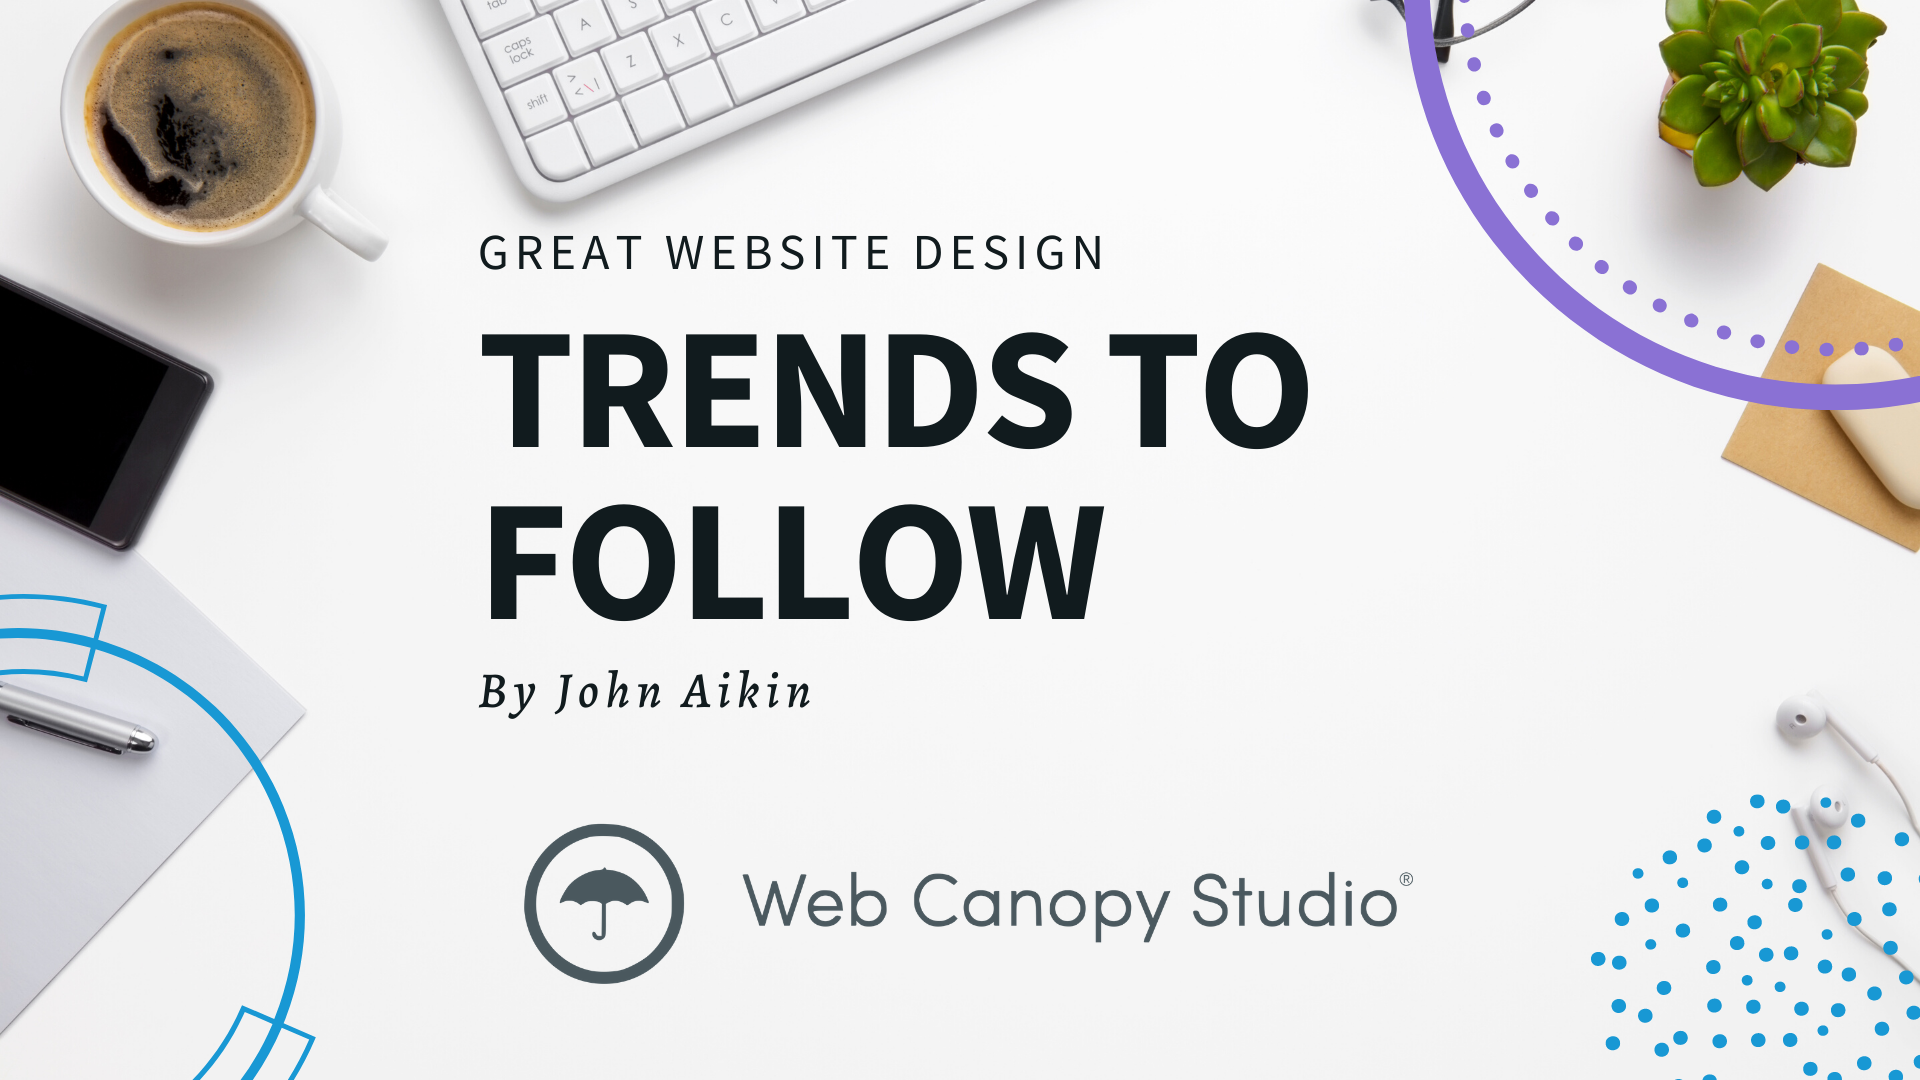 when it comes to SaaS websites, great design trends focus on converting visitors on landing pages throughout the site while implementing storytelling tools to improve user experience for the SaaS product